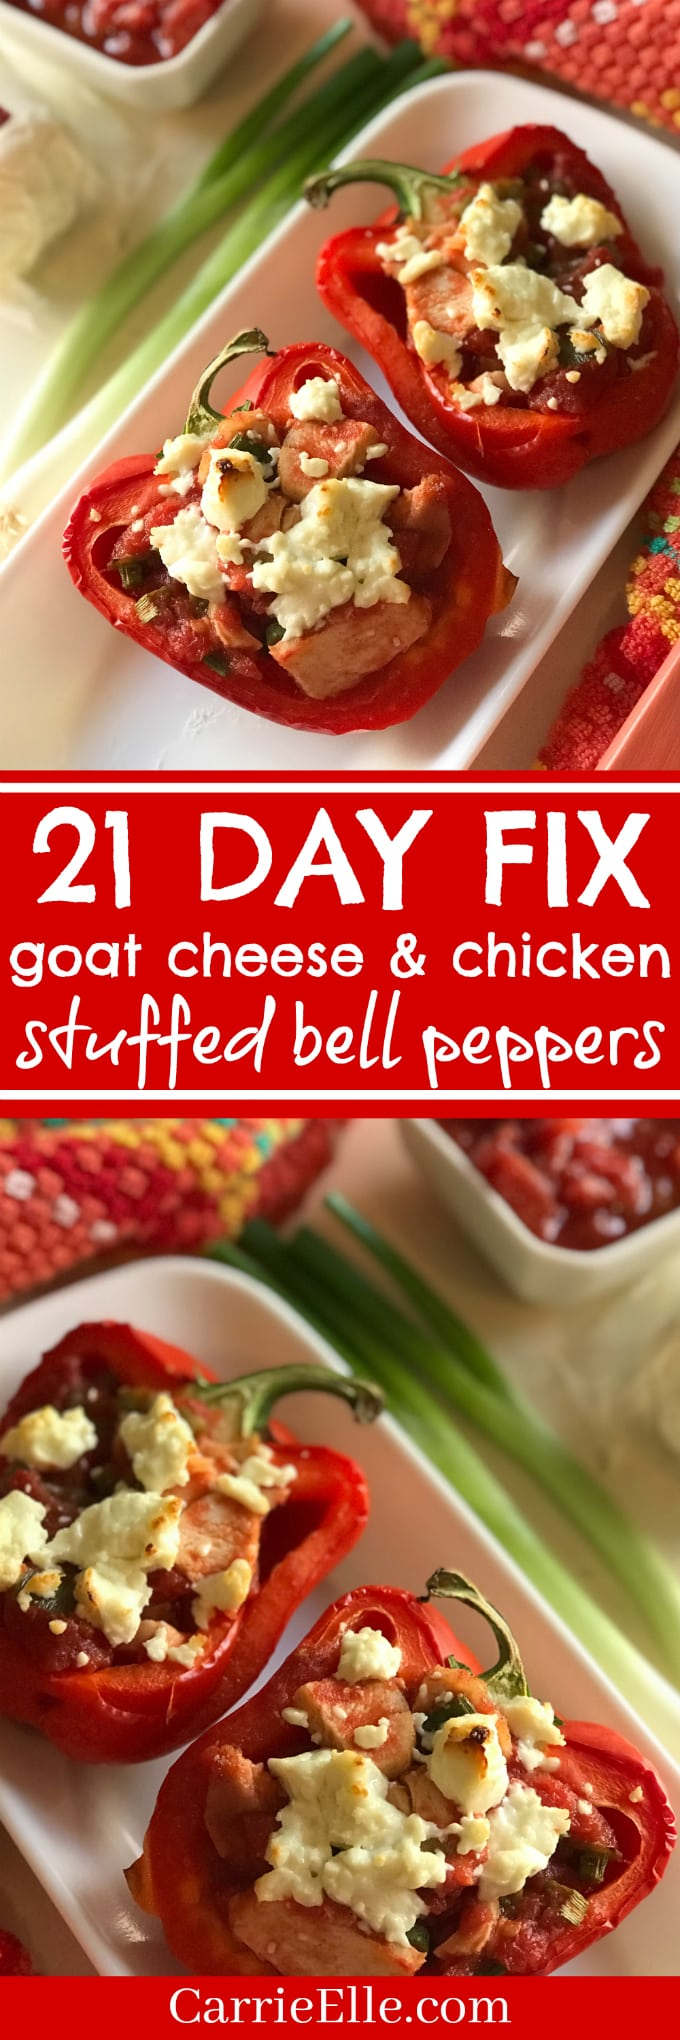 21DF Stuffed Bell Peppers